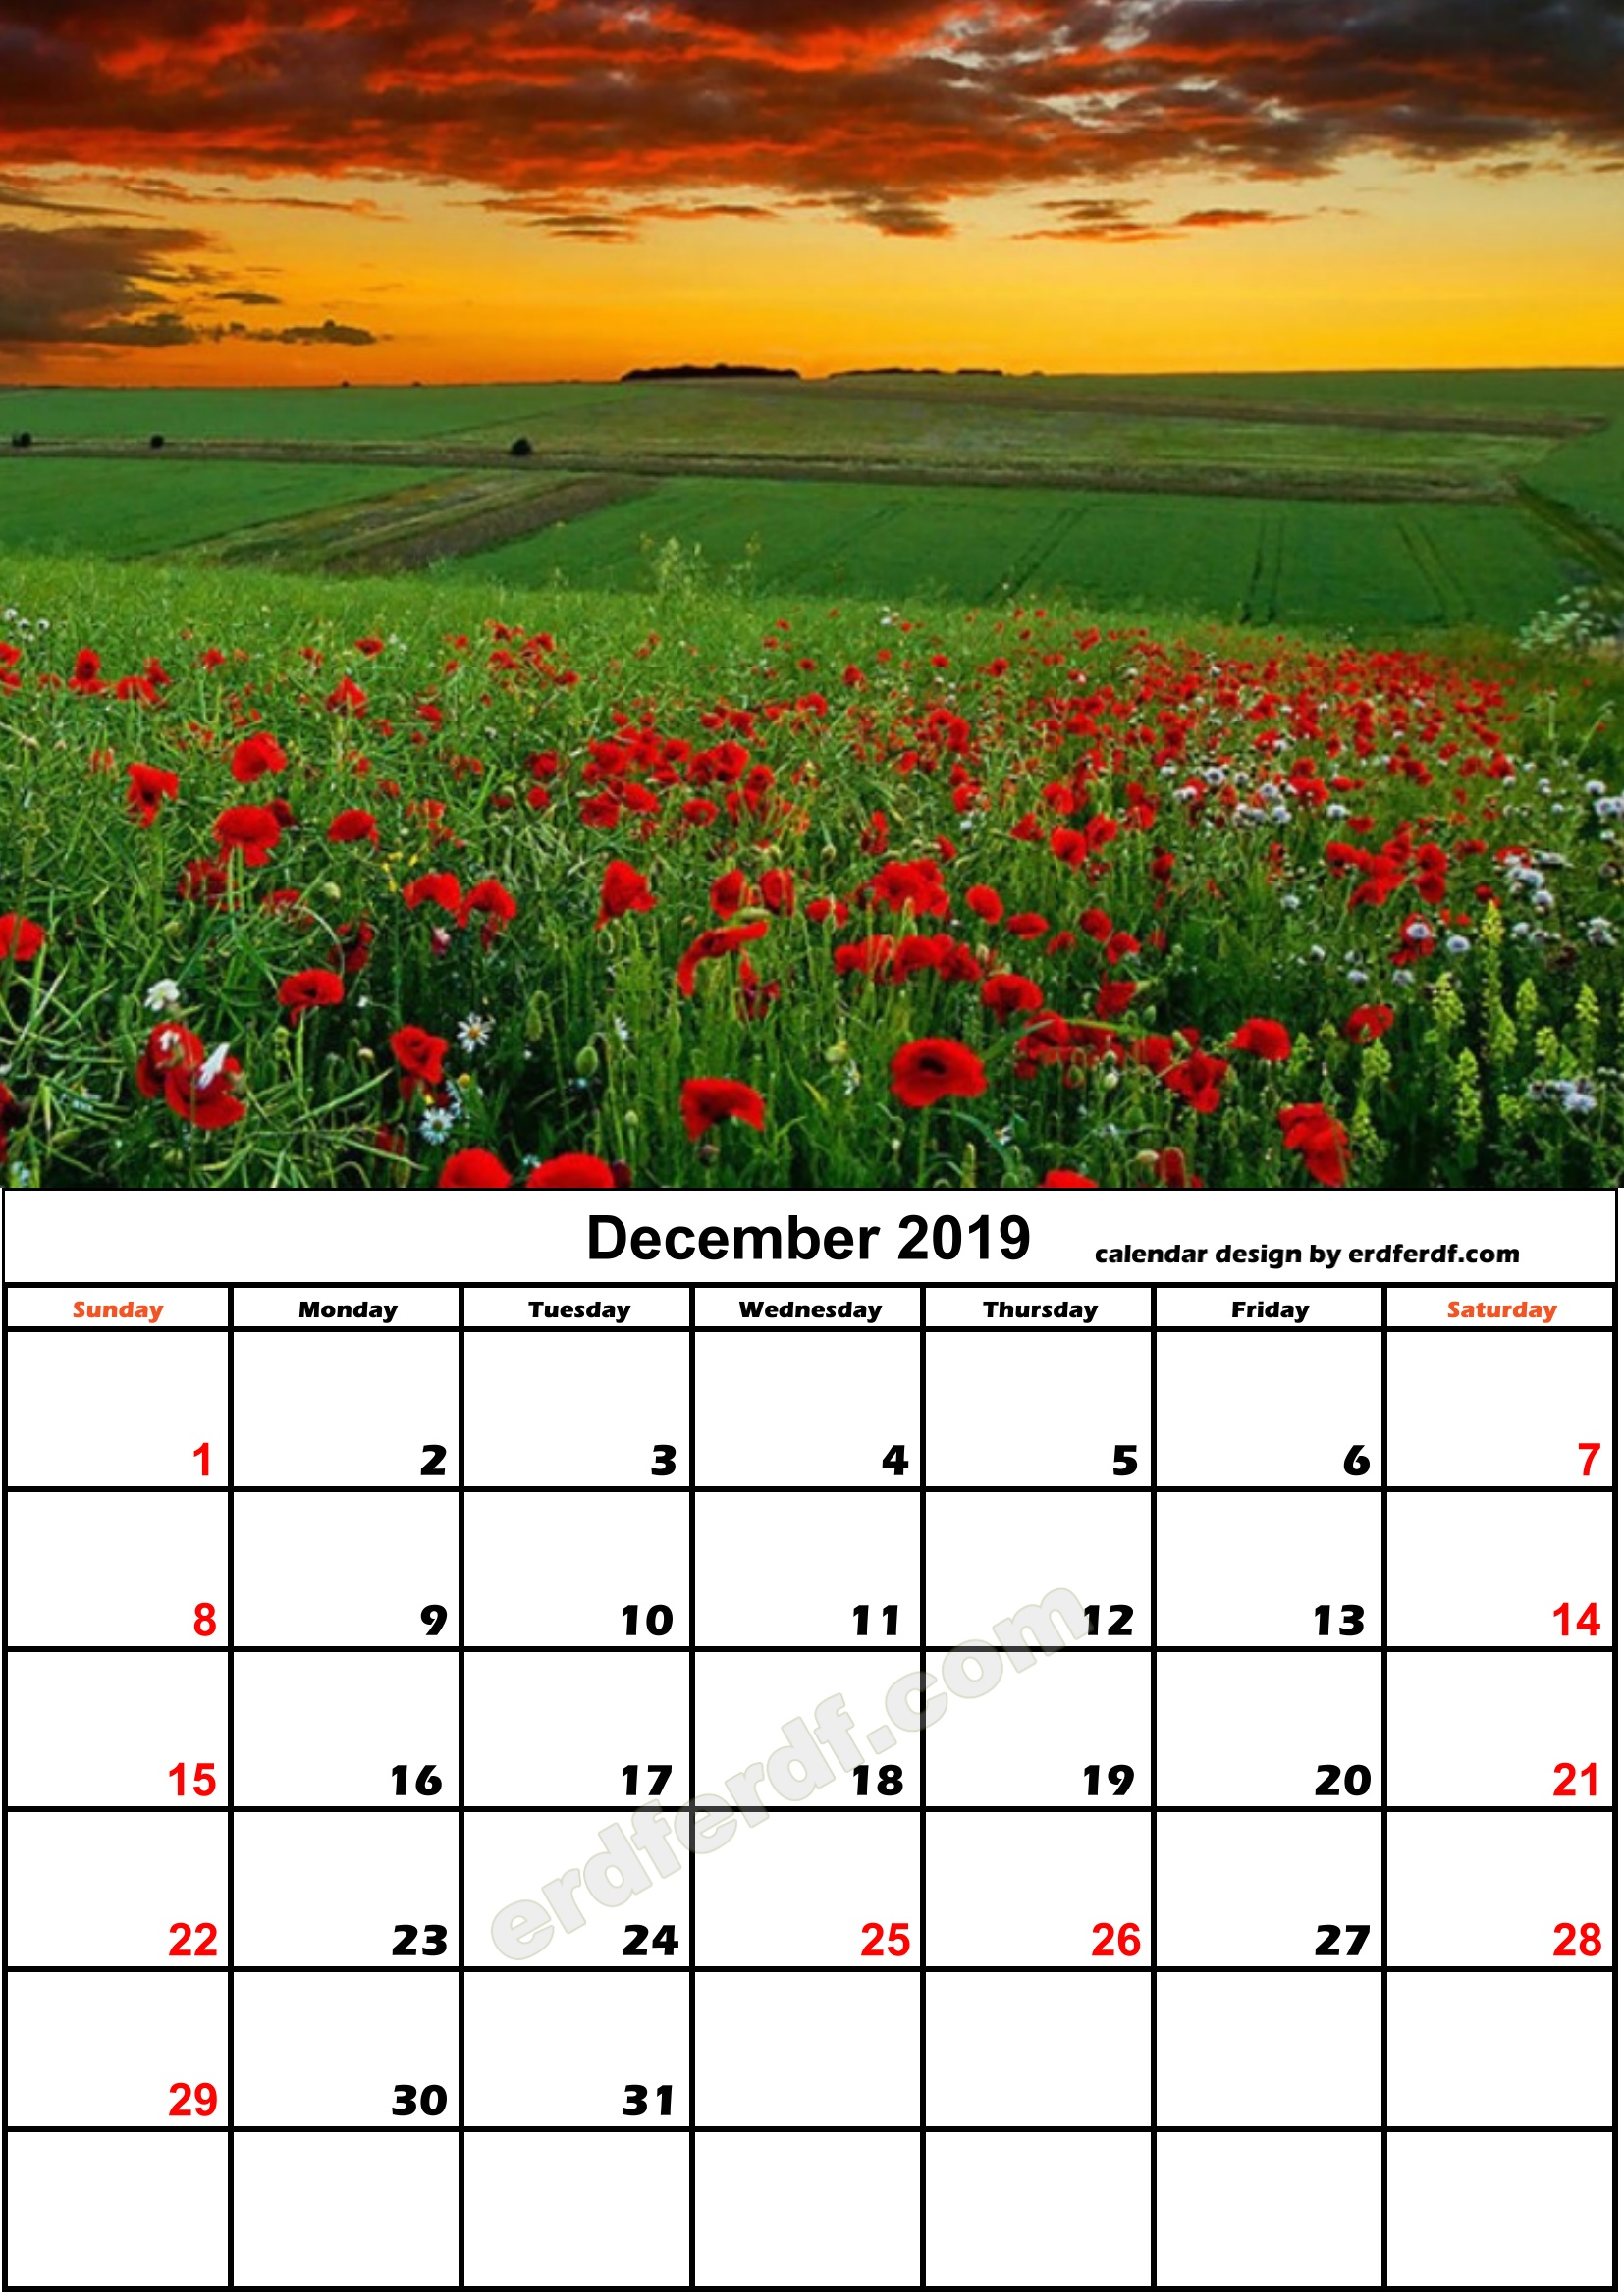 12 December Flower Nature Calendar Monthly 2019 Free Download